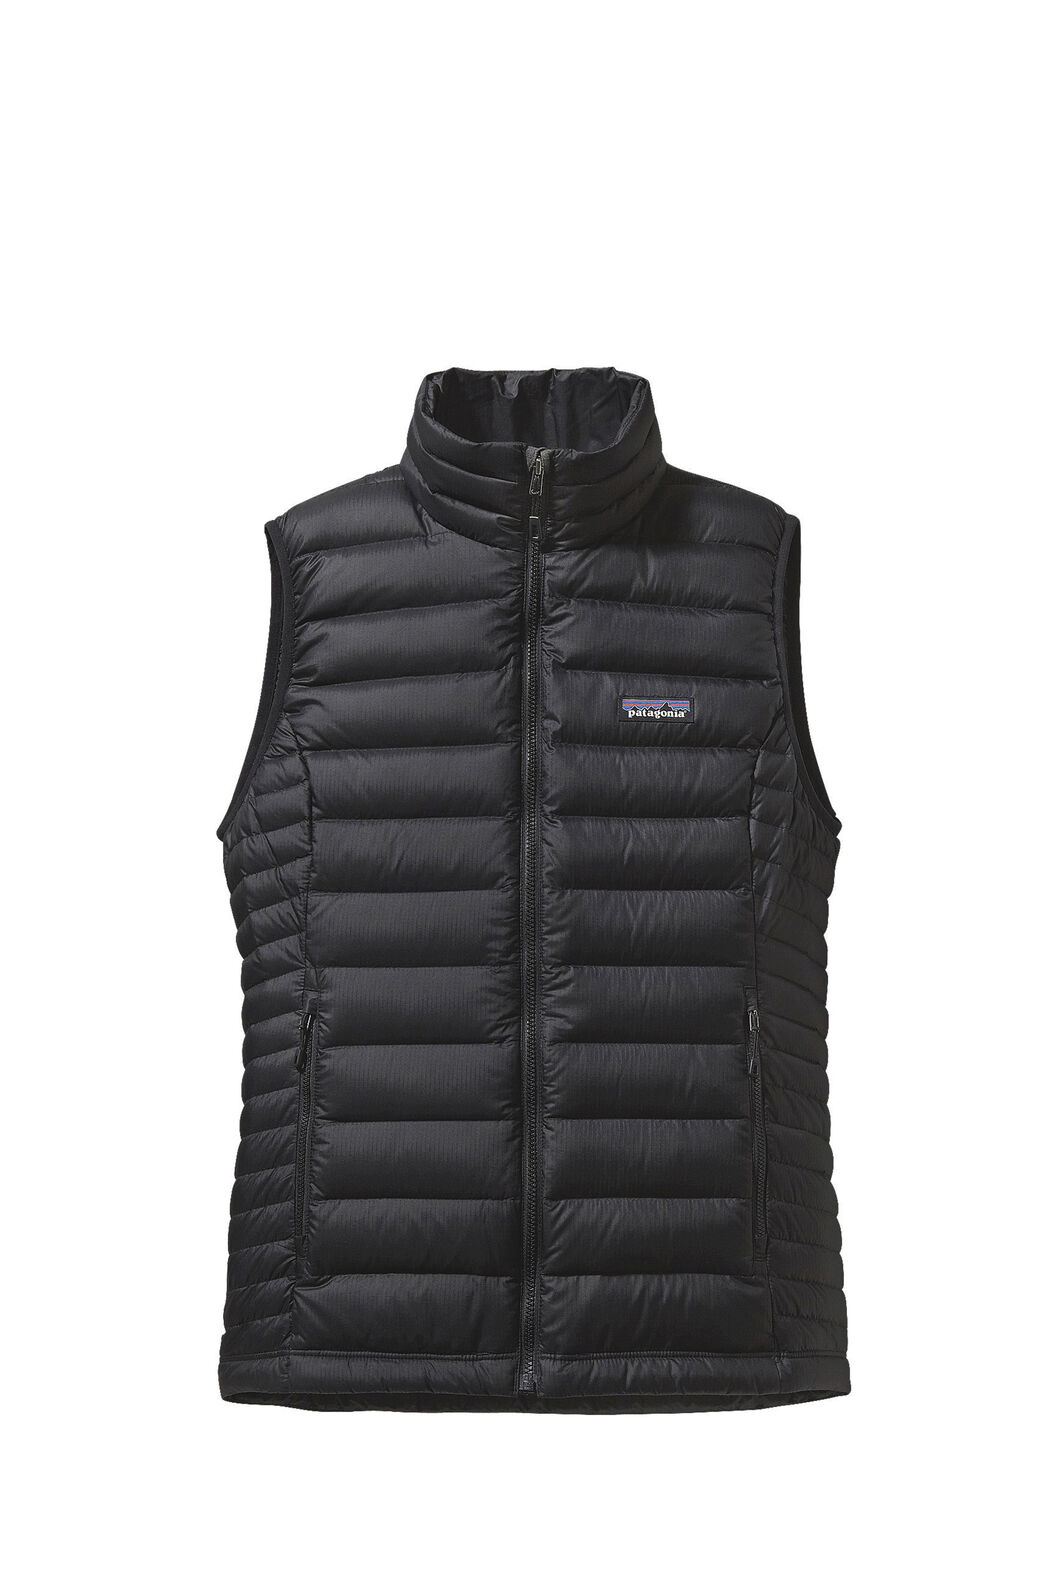 Patagonia Women's Down Sweater Vest, Black, hi-res